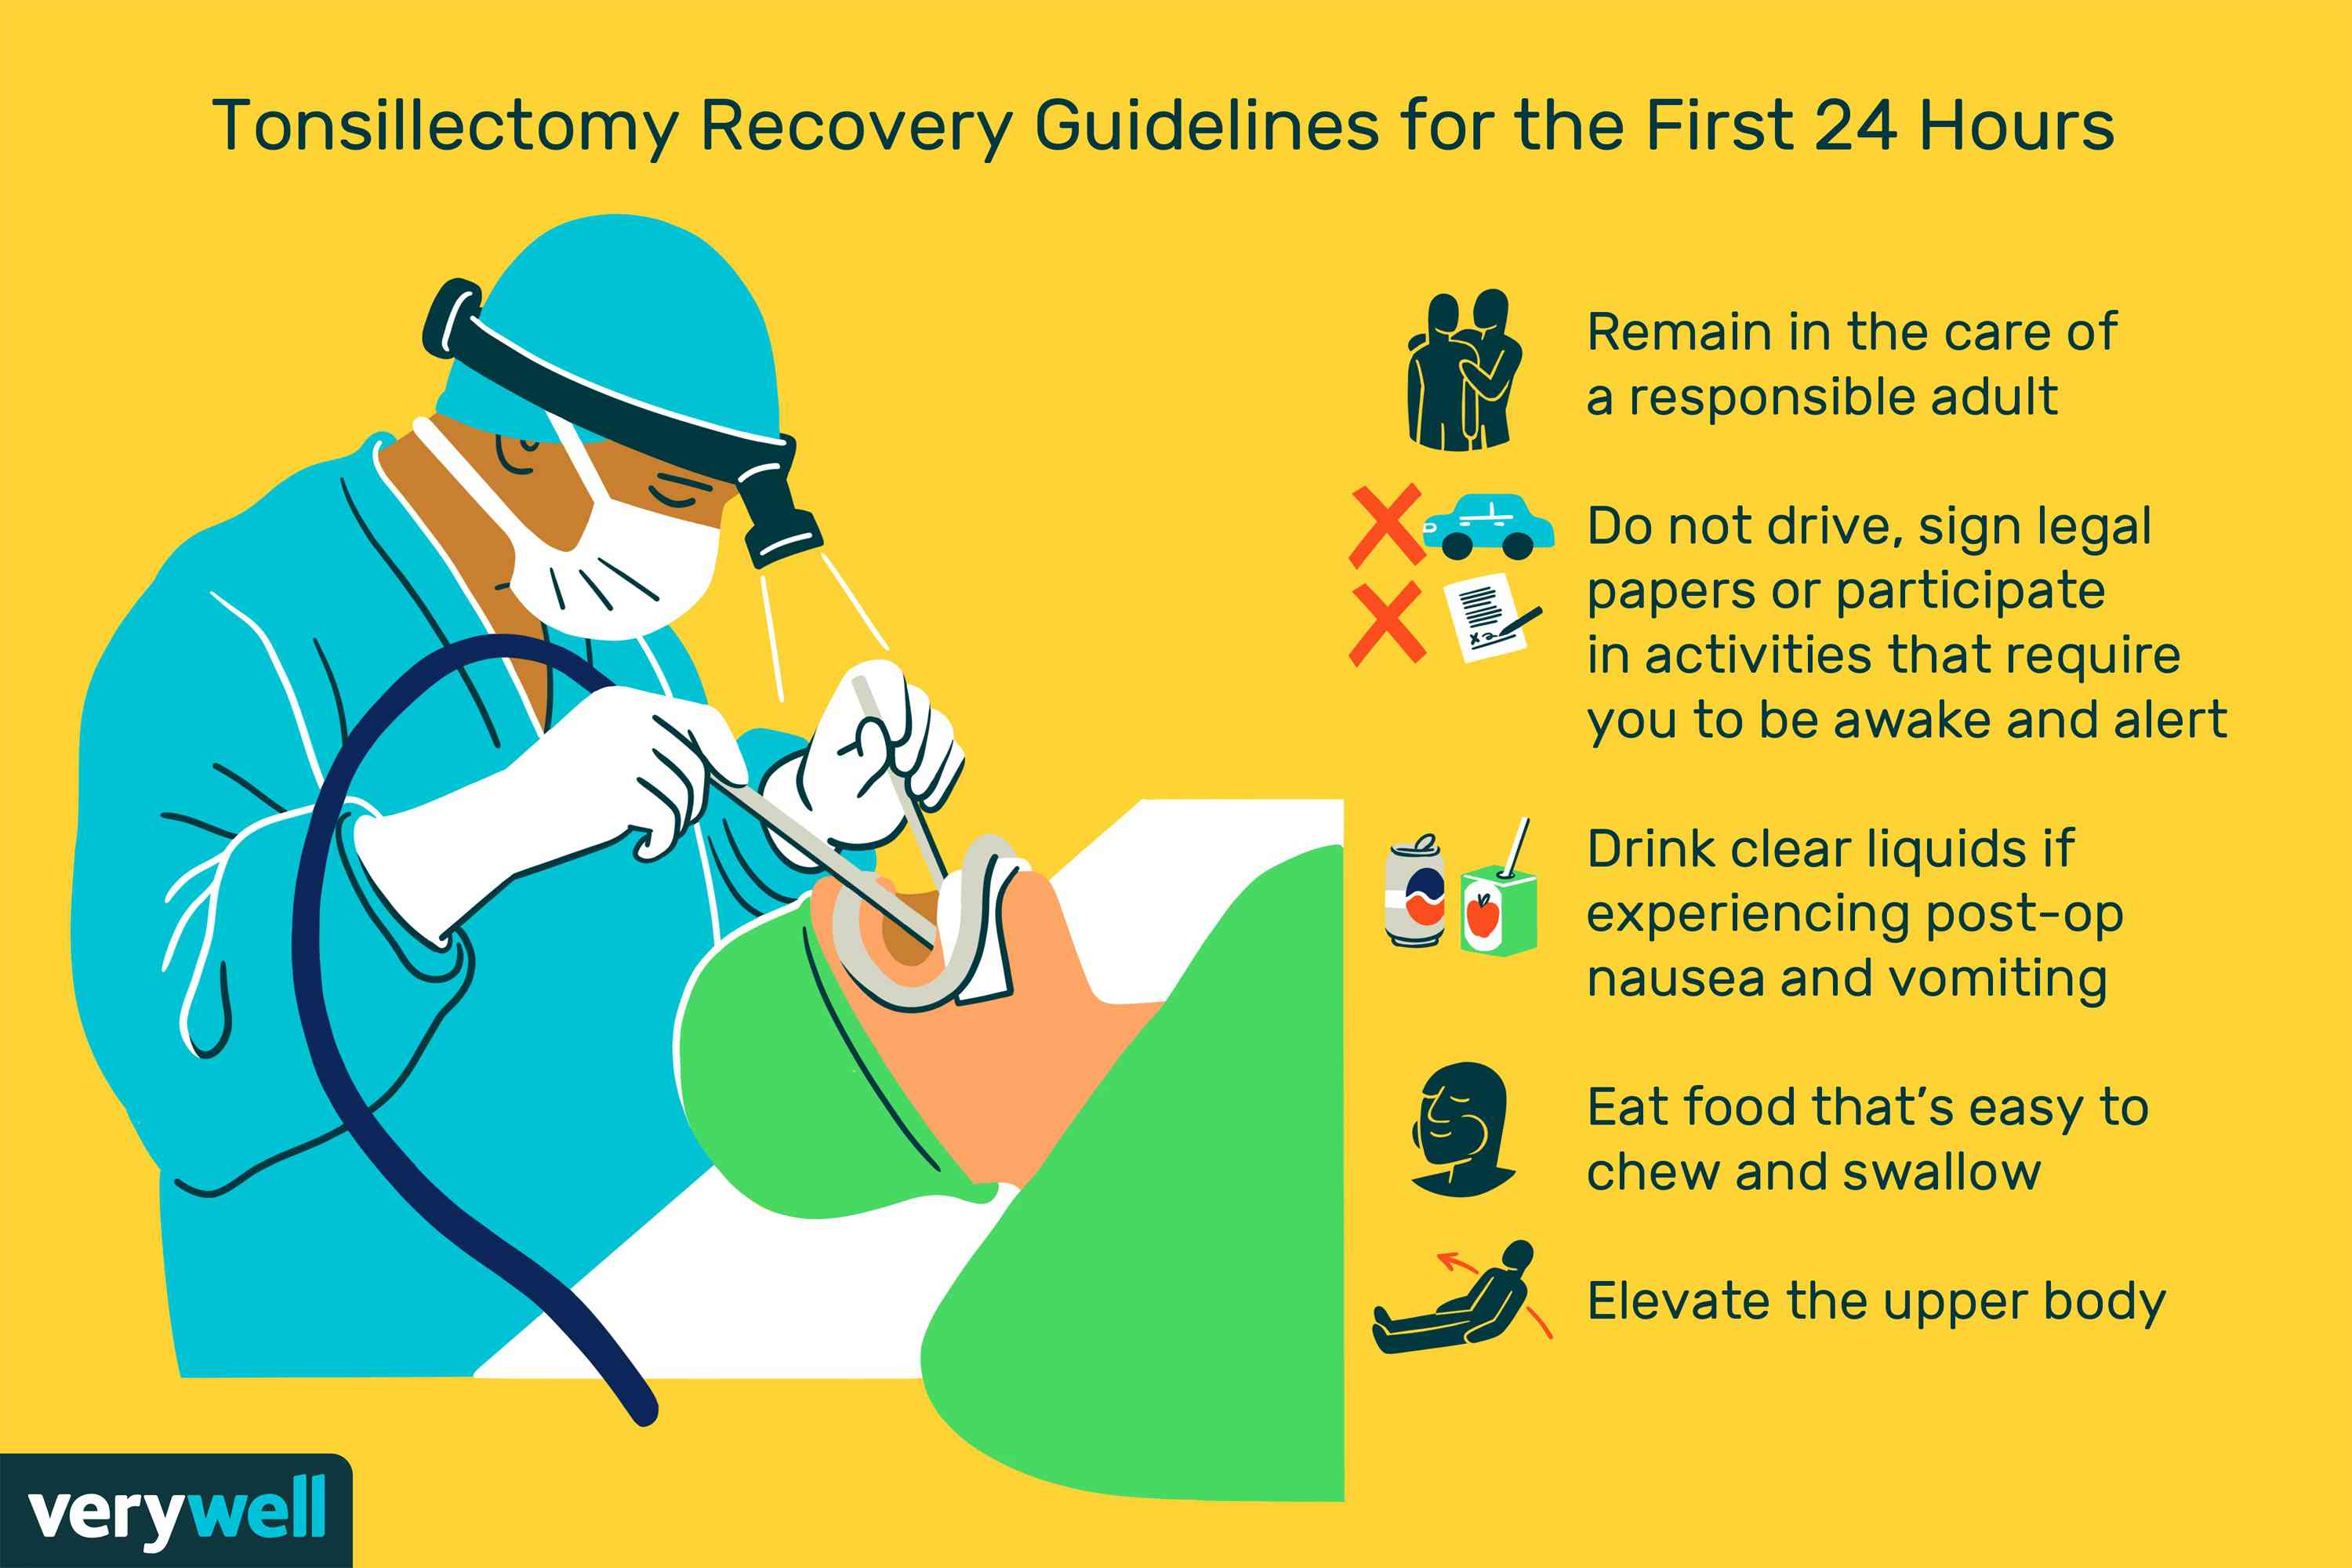 Tonsillectomy recovery guidelines